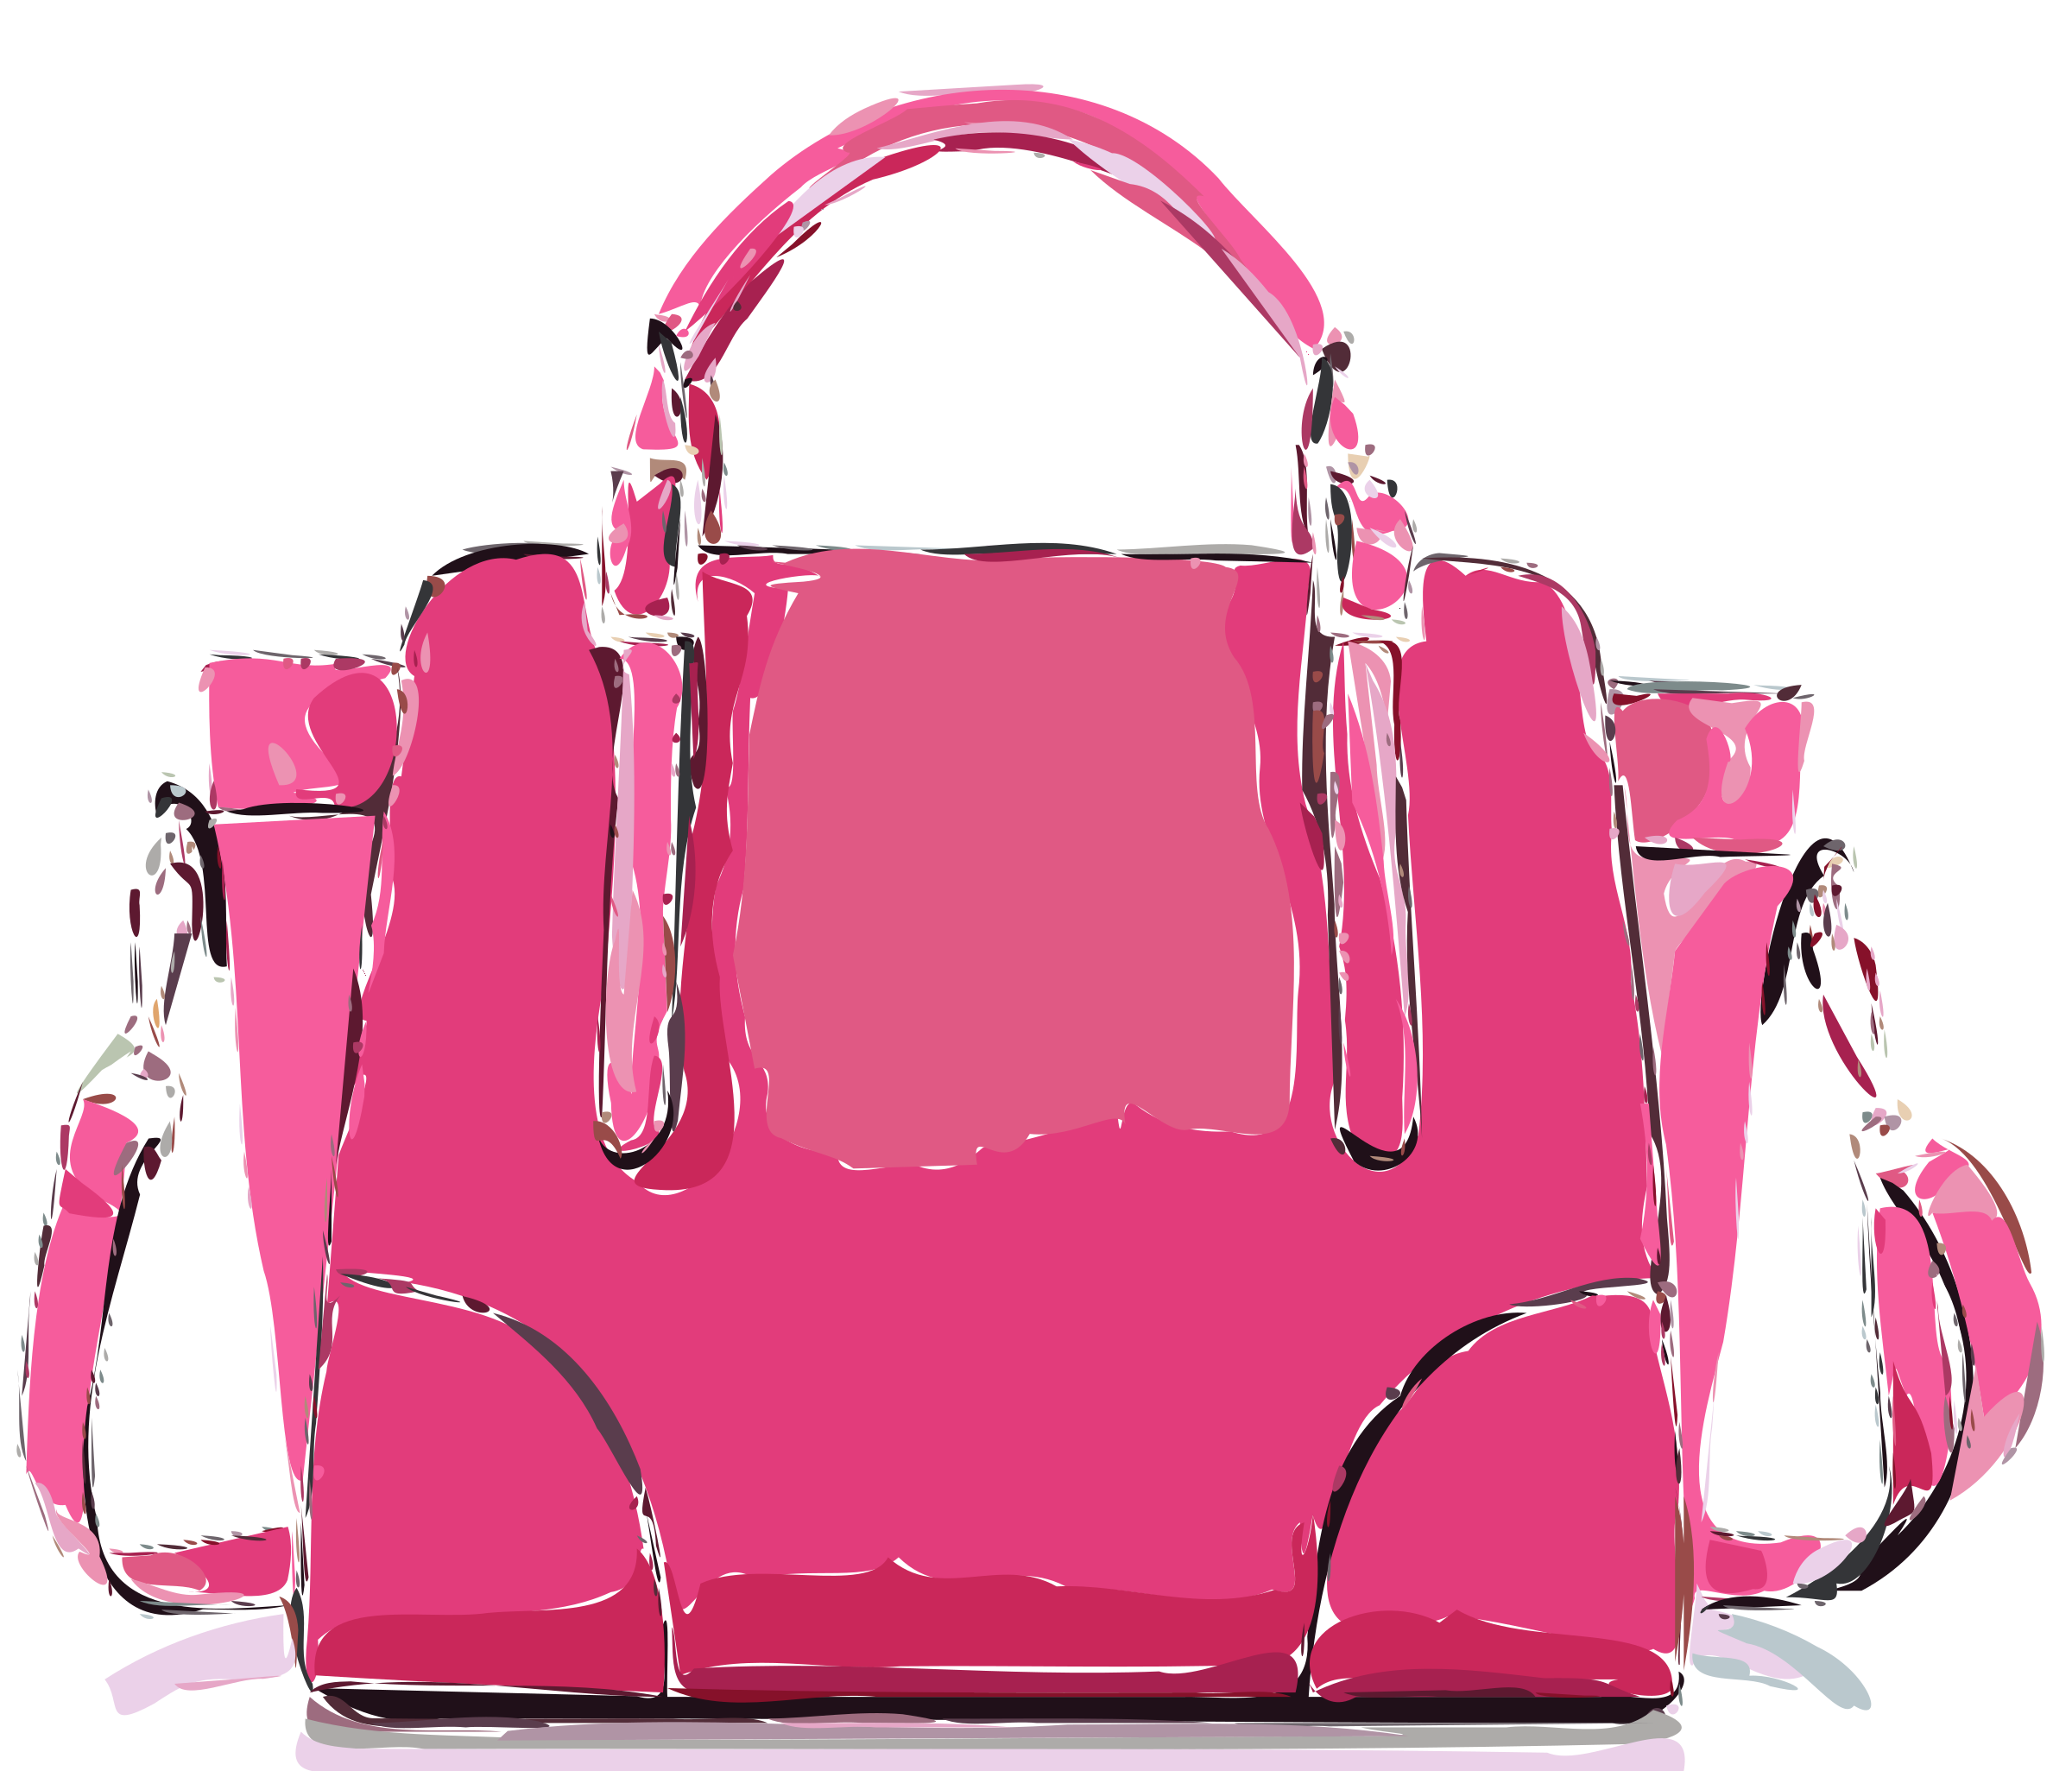 Pinky's Bag without Logo by rejon